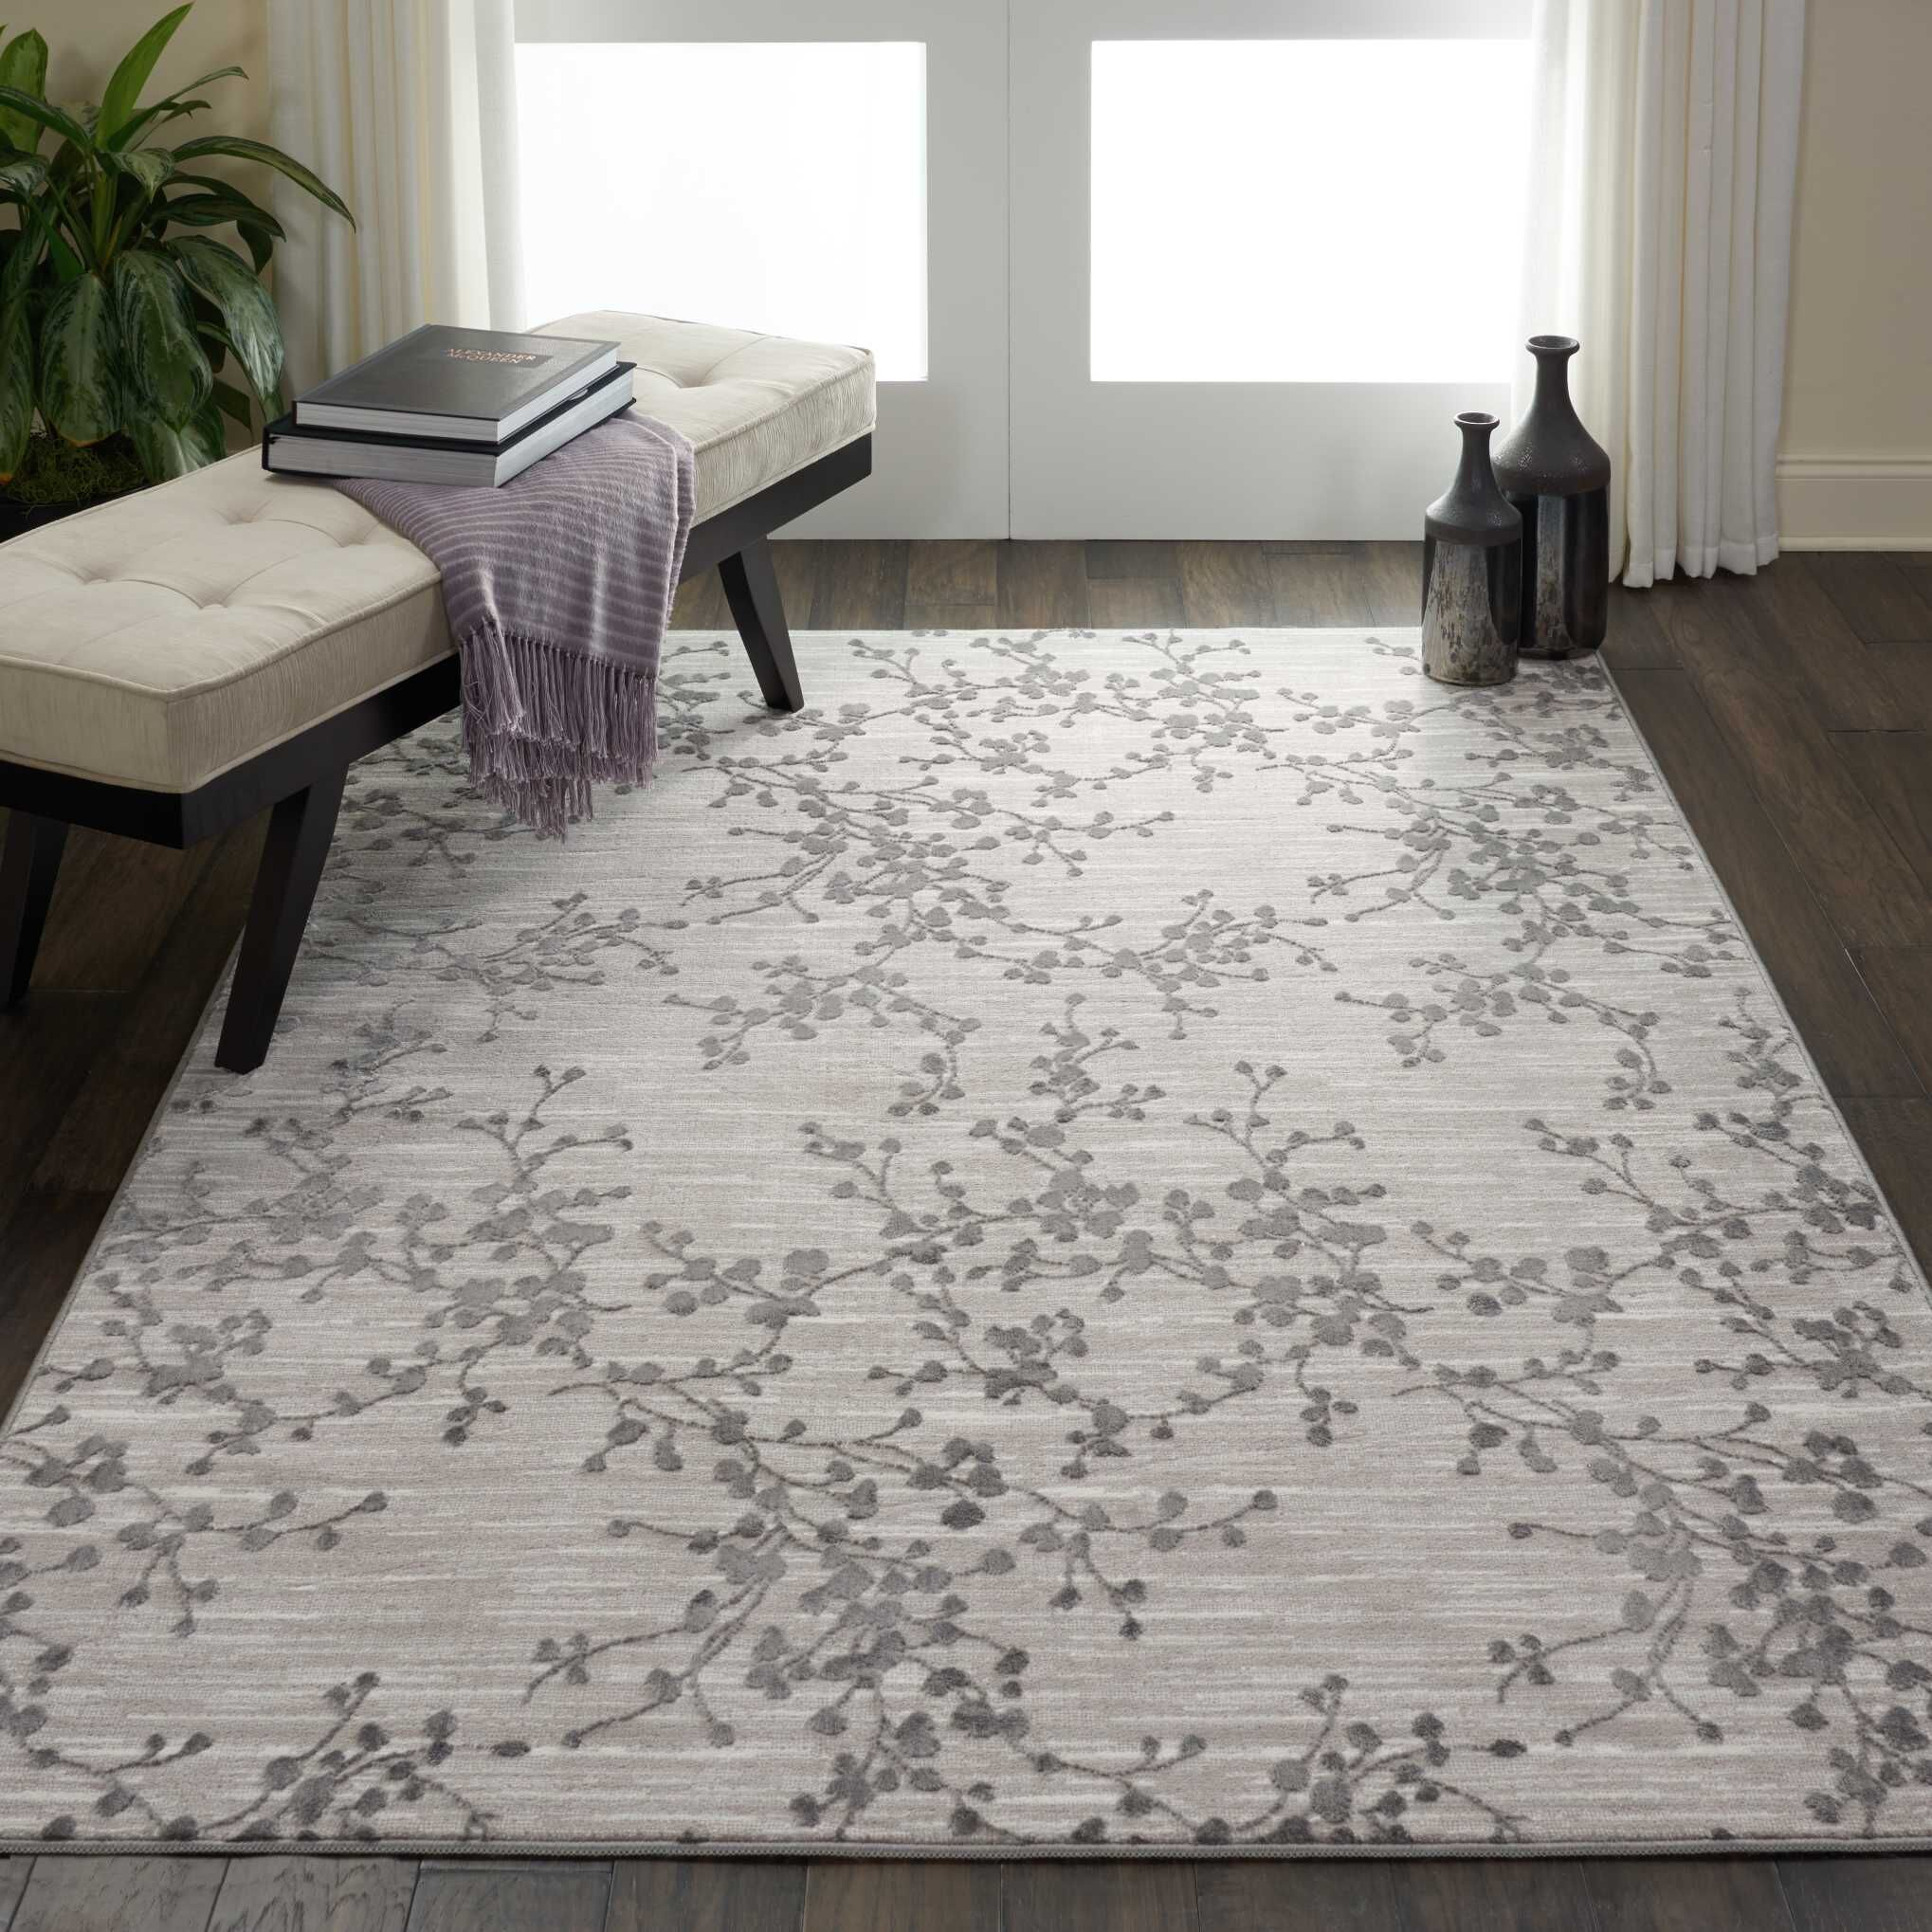 Burford Floral Gray Area Rug Rug Size: Rectangle 4' x 6'